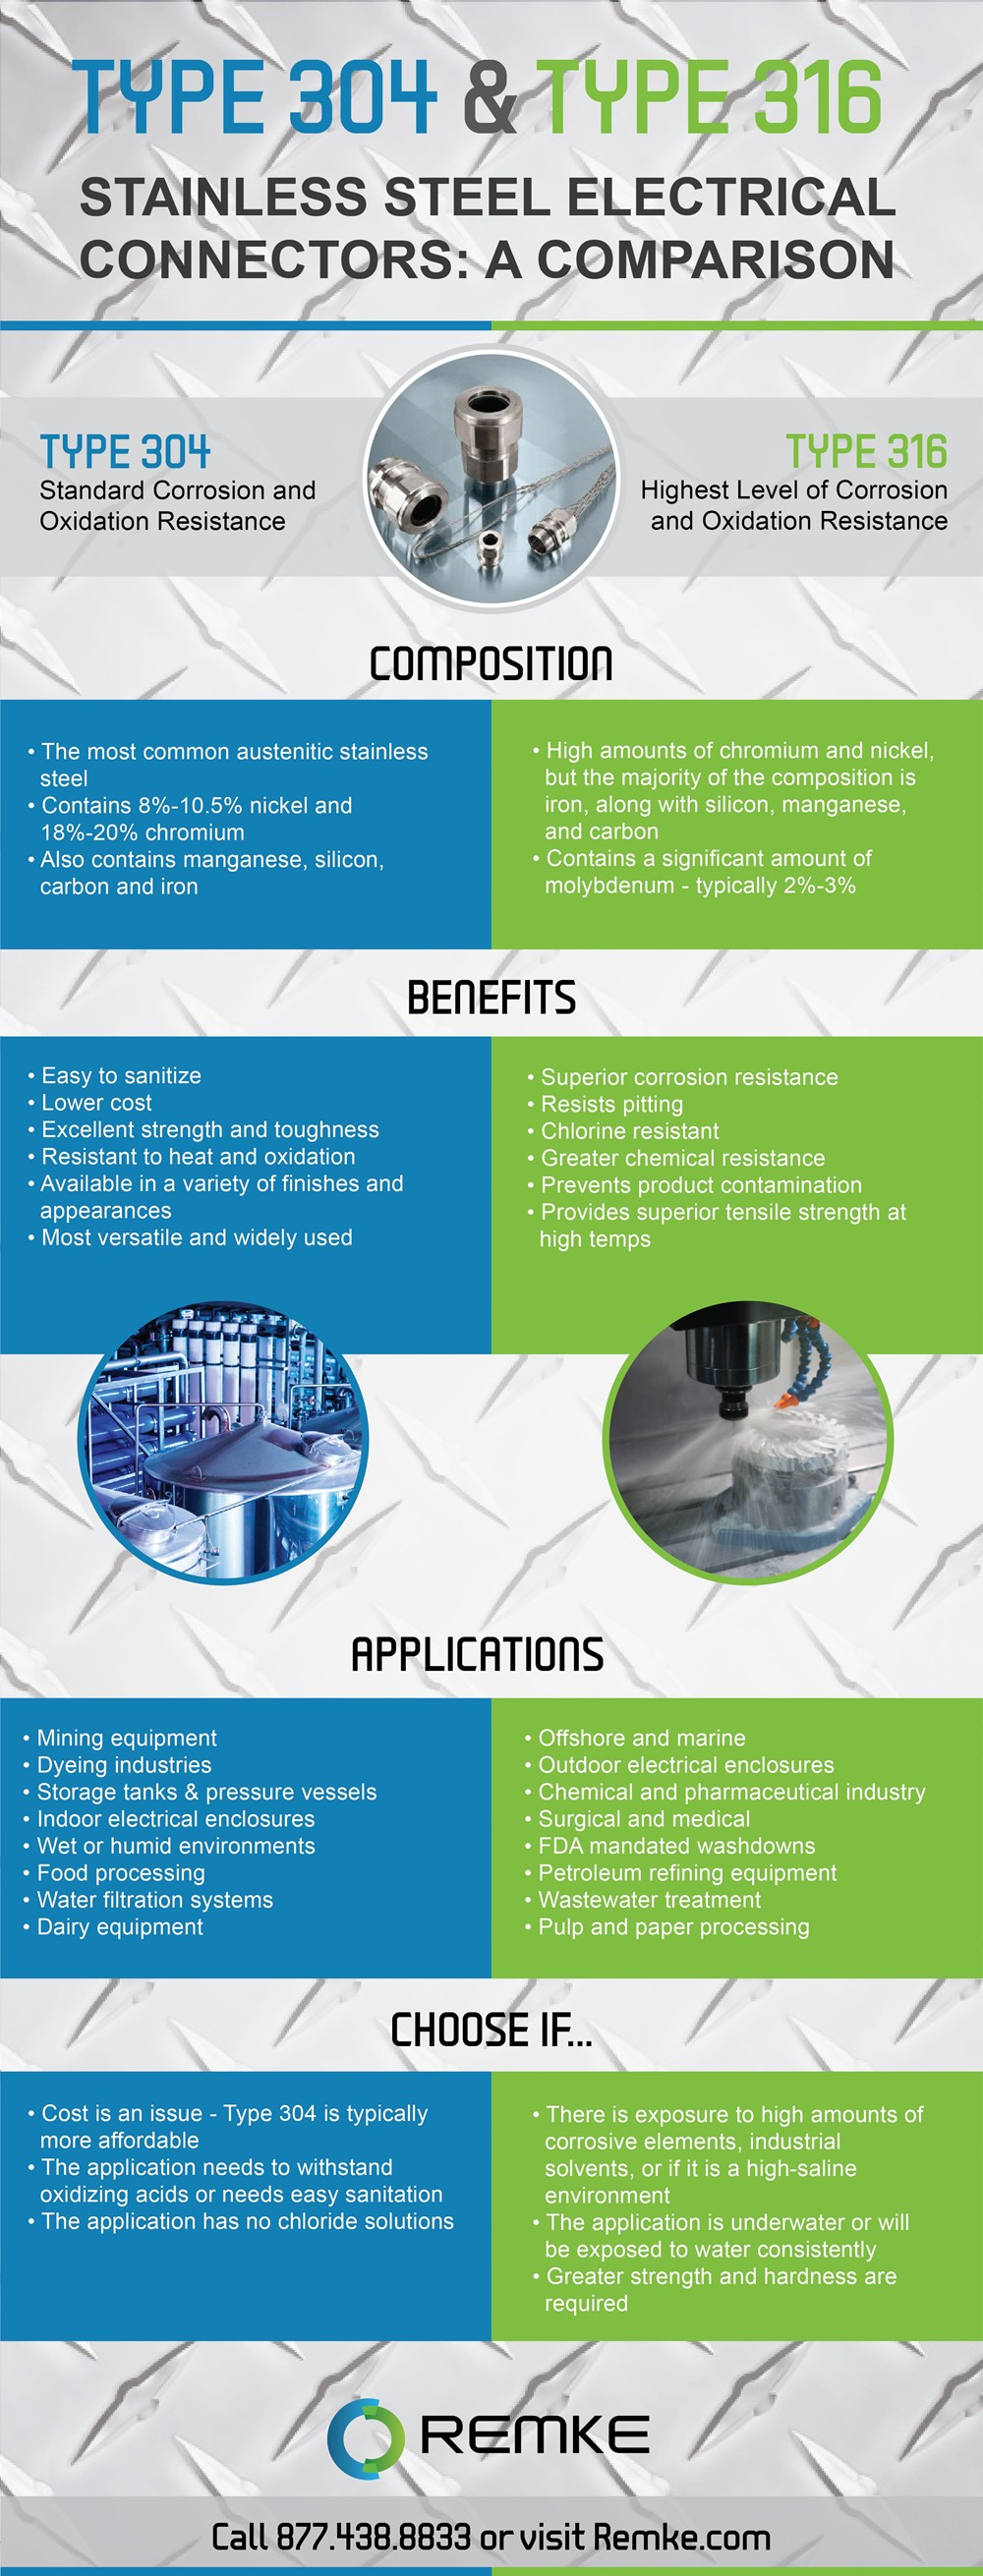 Compare Type 304 and 316 Stainless Steel Connectors in an Infographic - Blog.Remke.com